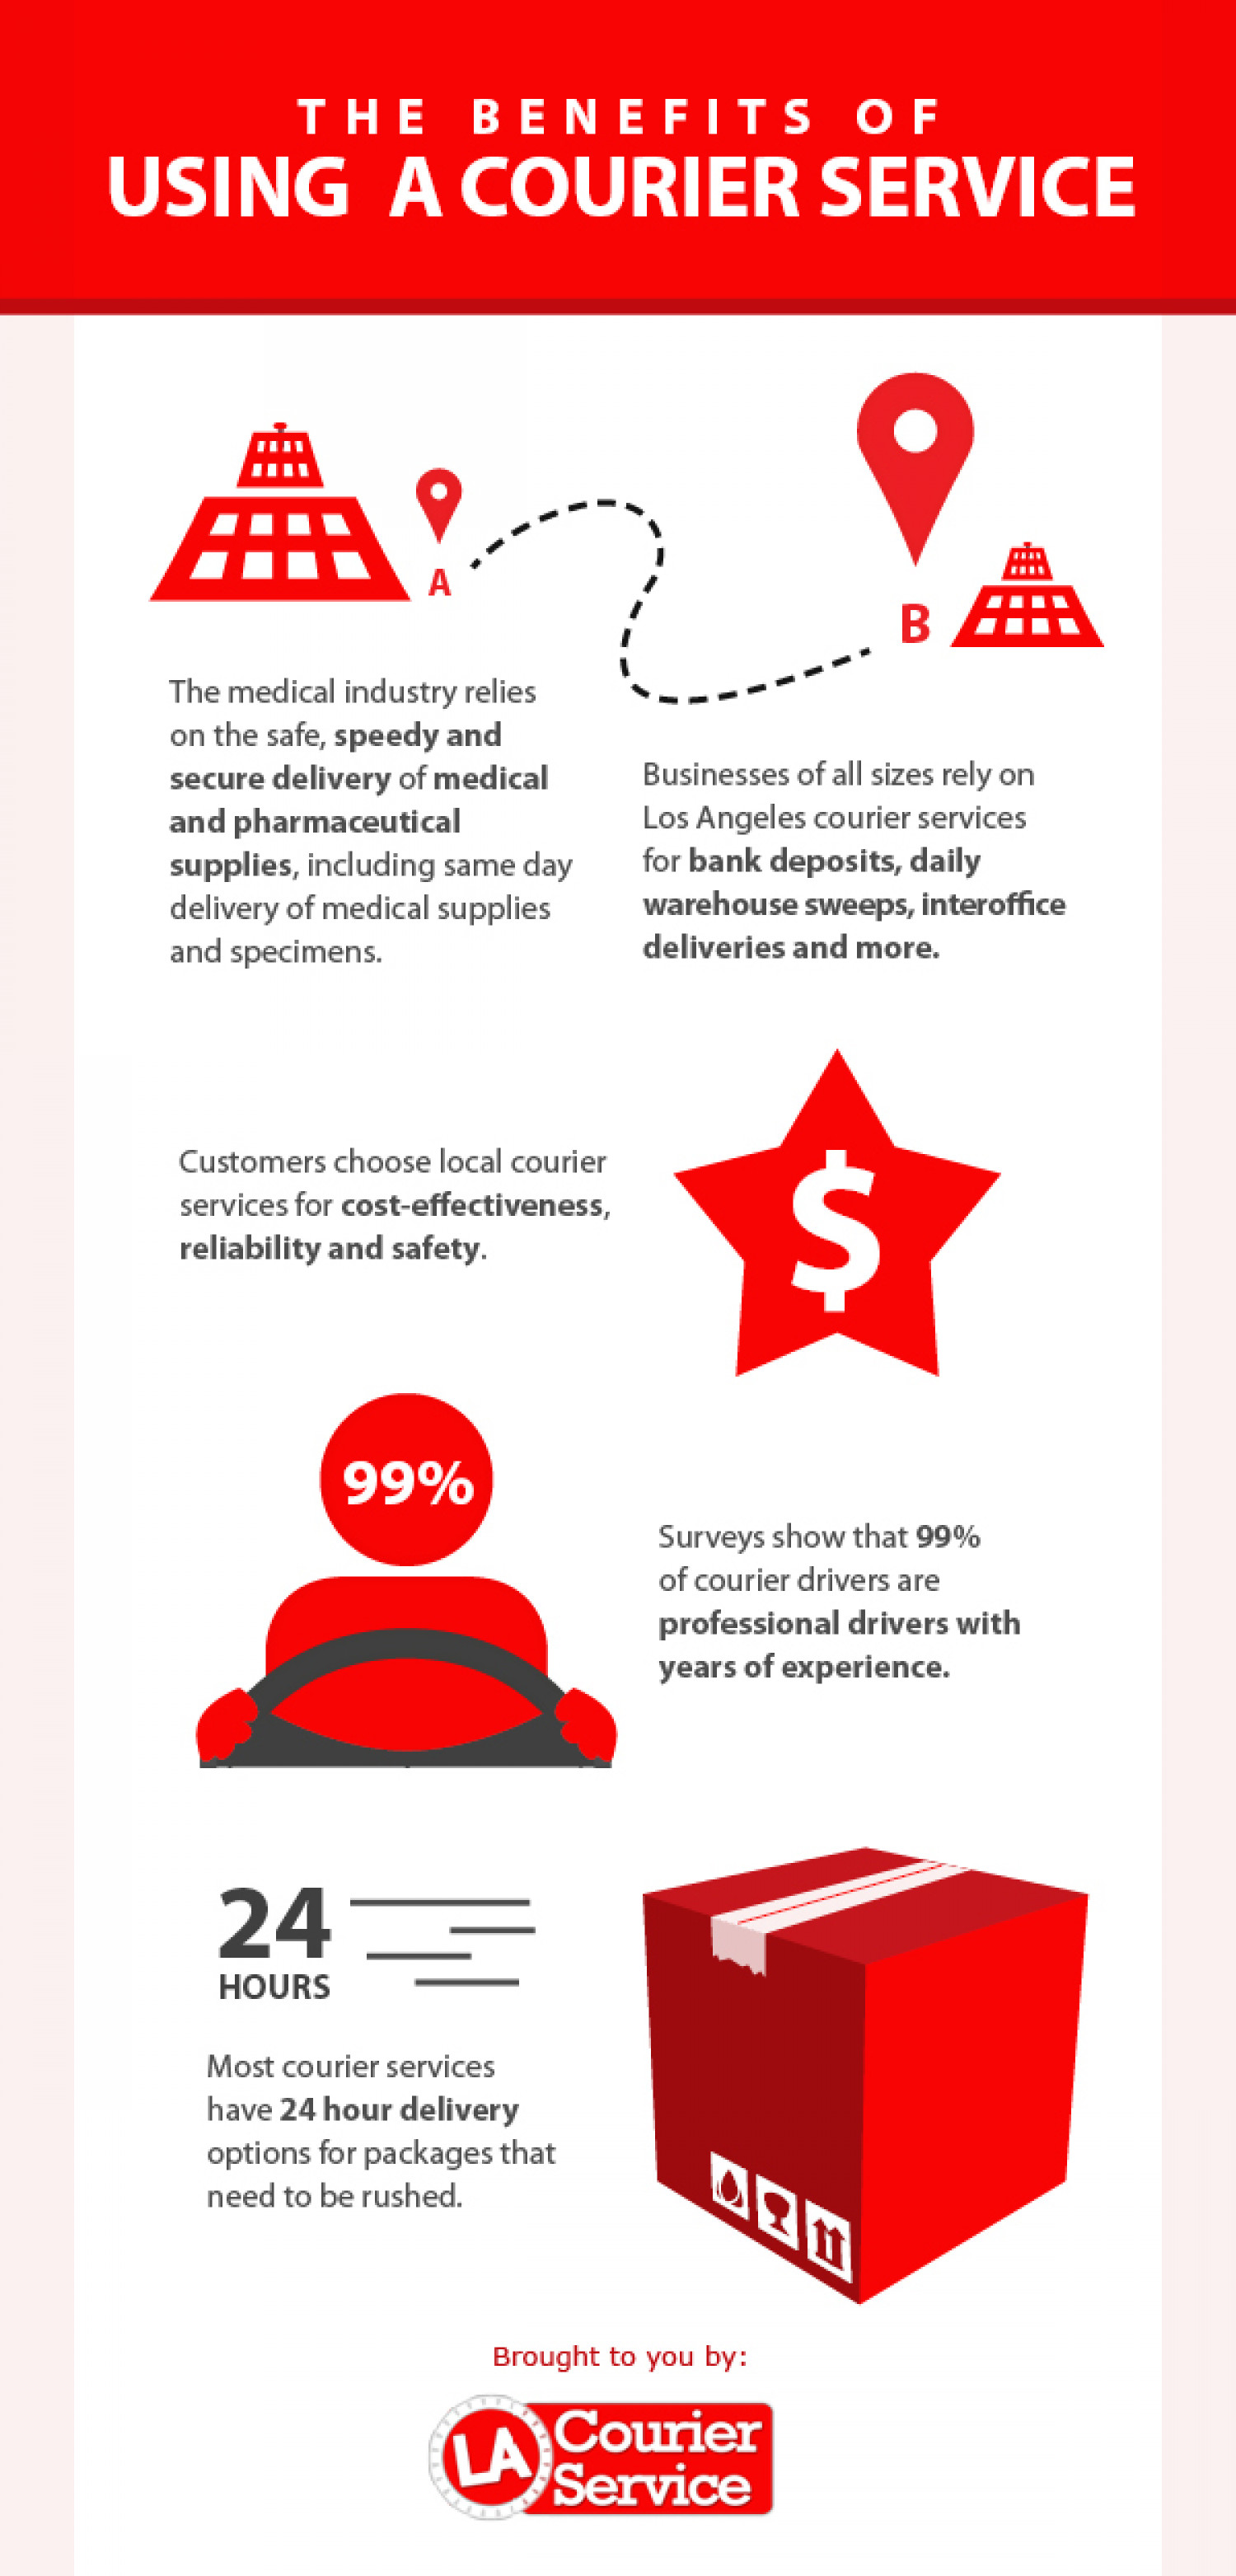 The Benefits of Using A Courier Service Infographic